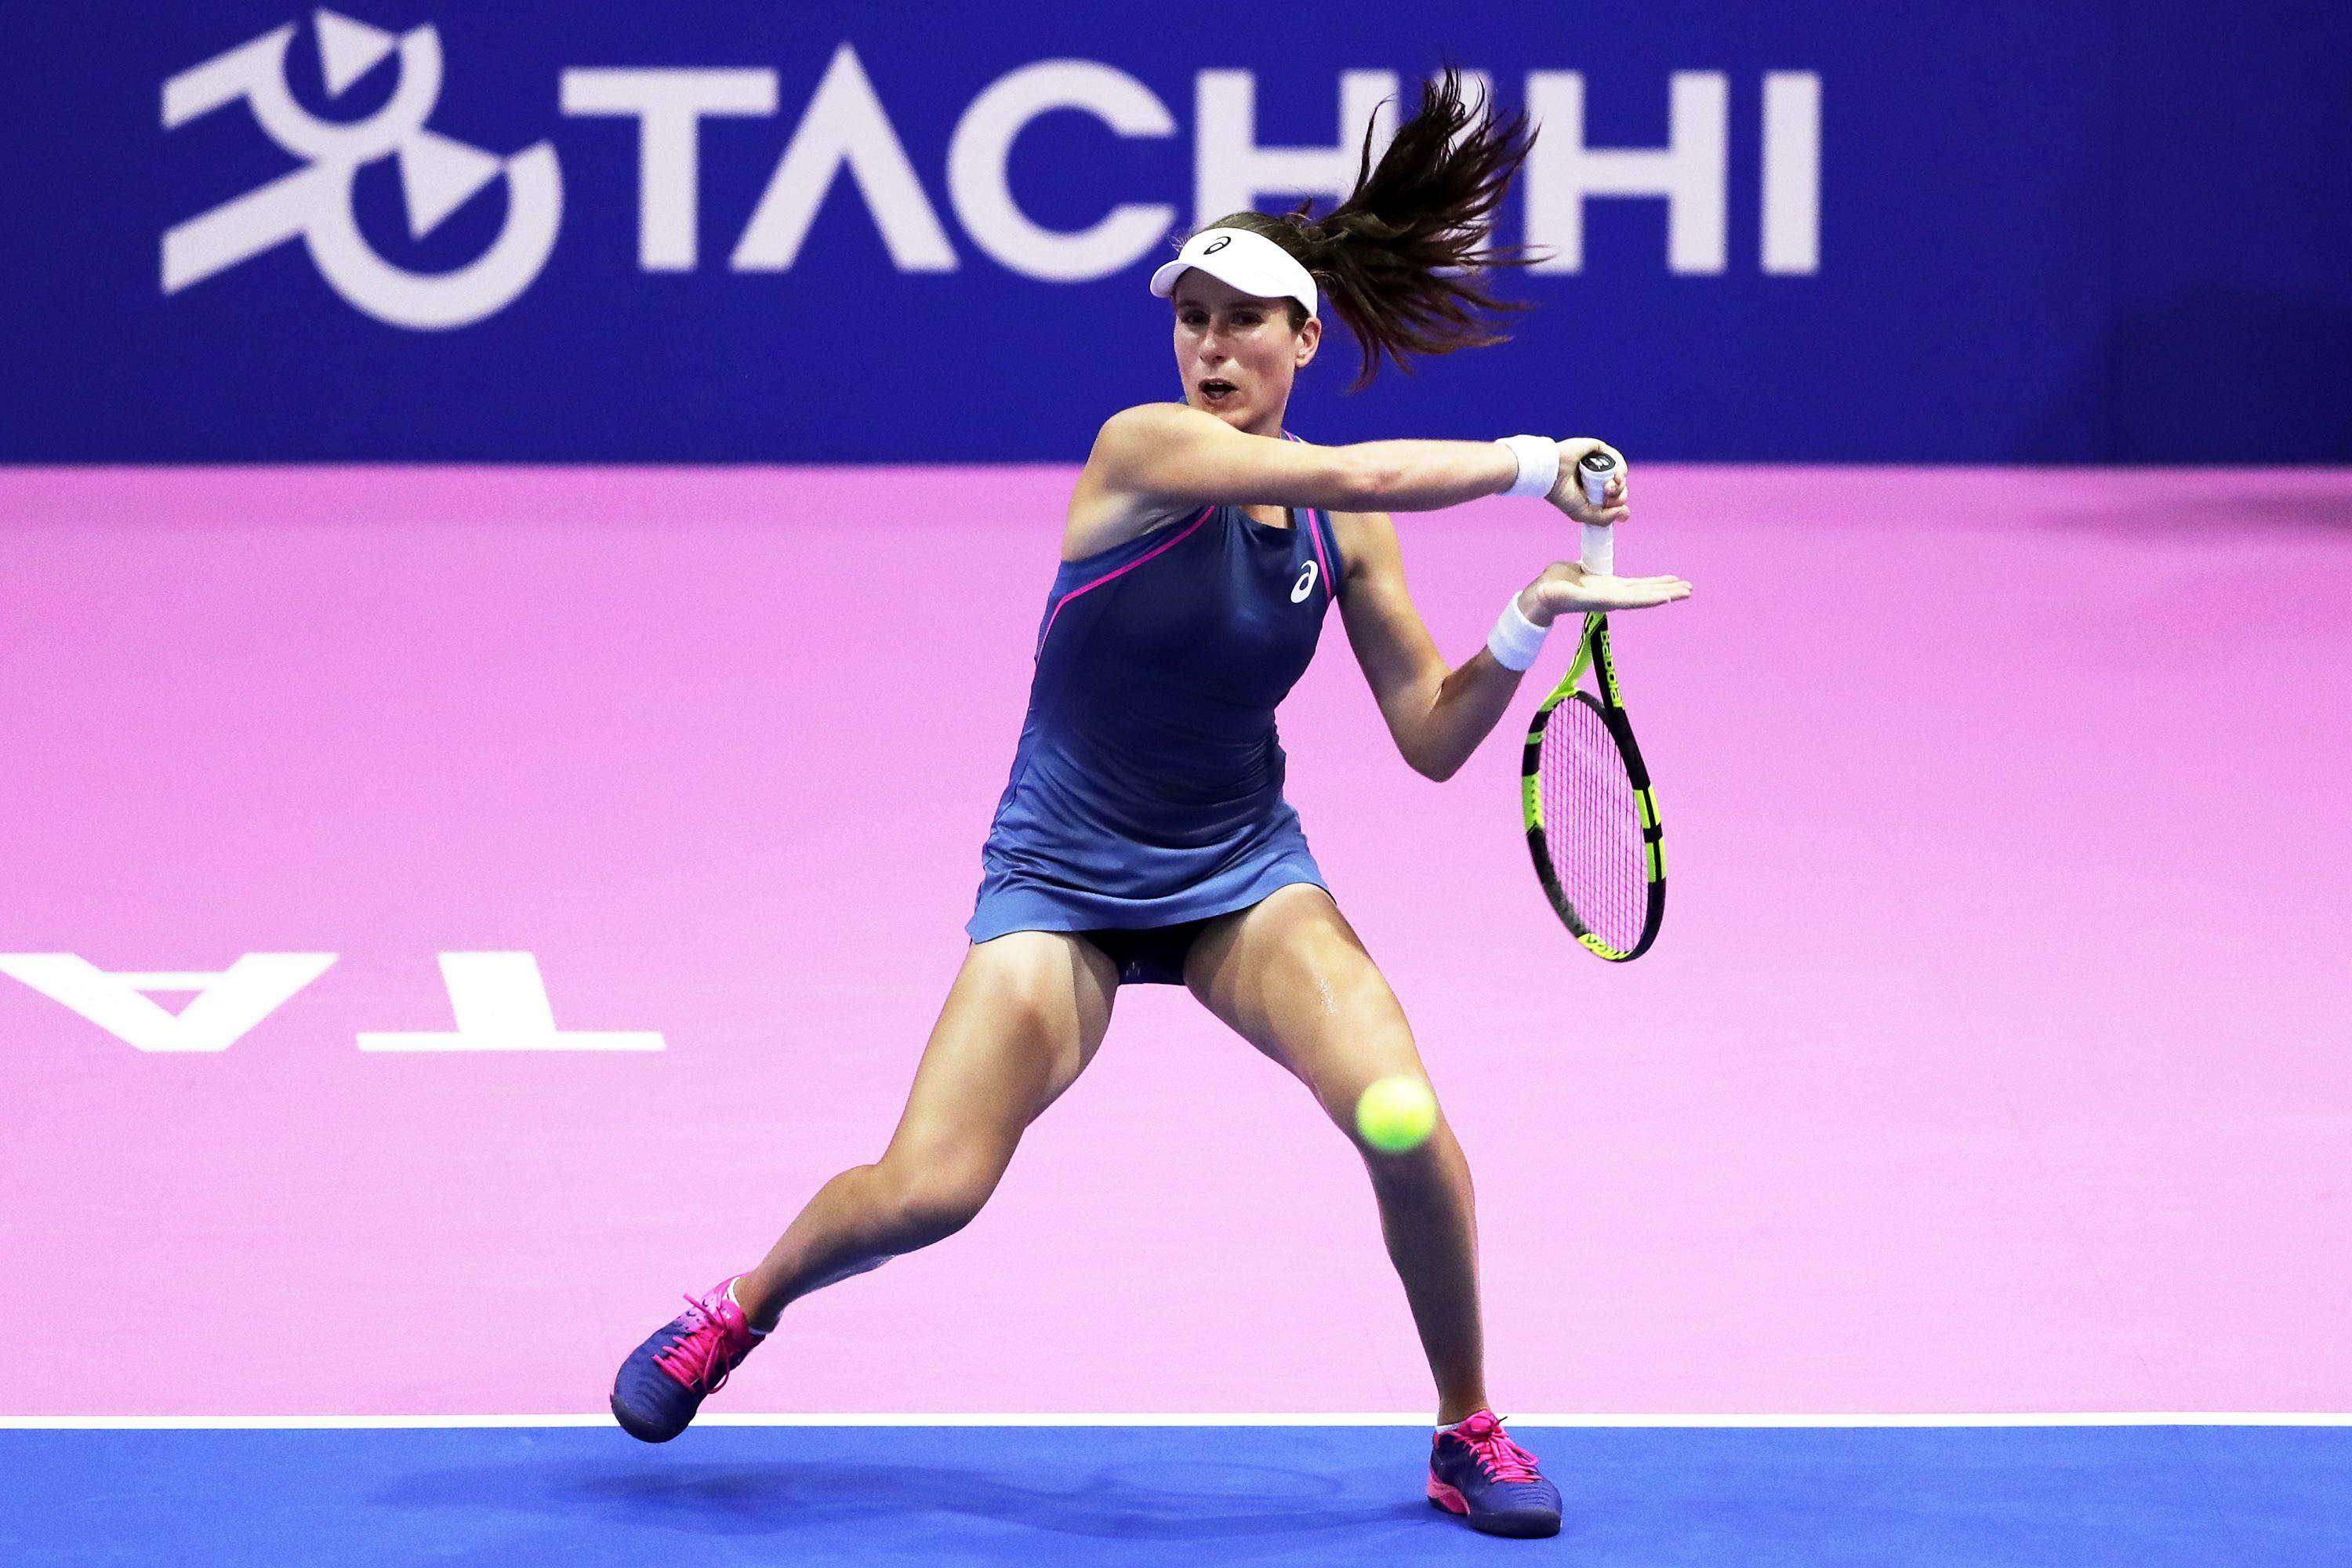 Jo Konta is looking to rediscover her form from 2017 in the new season